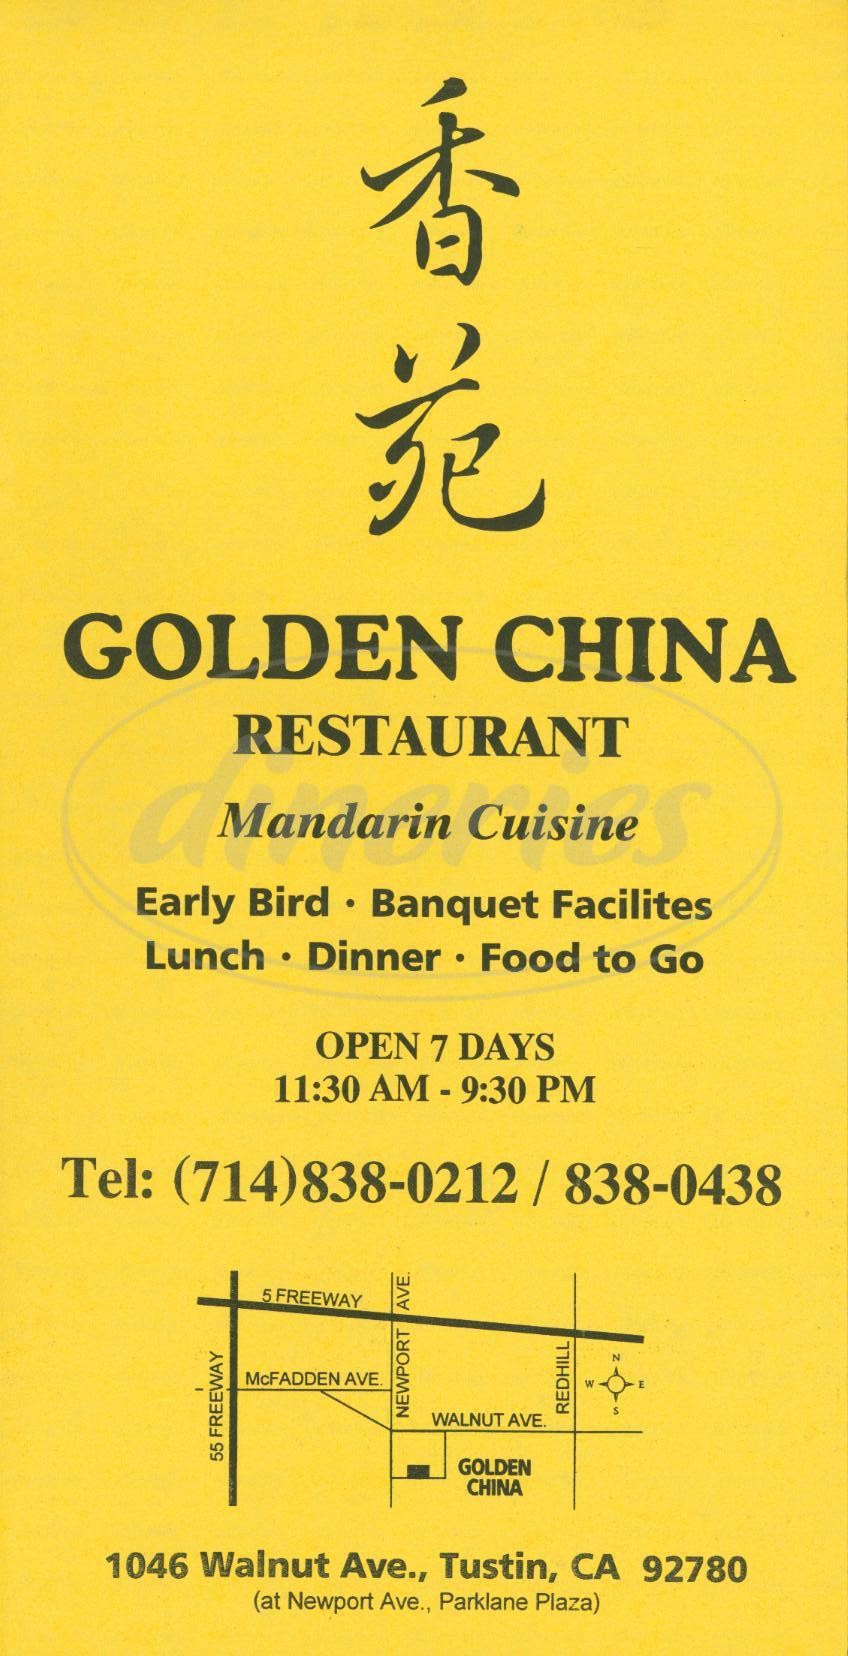 menu for Golden China Restaurant